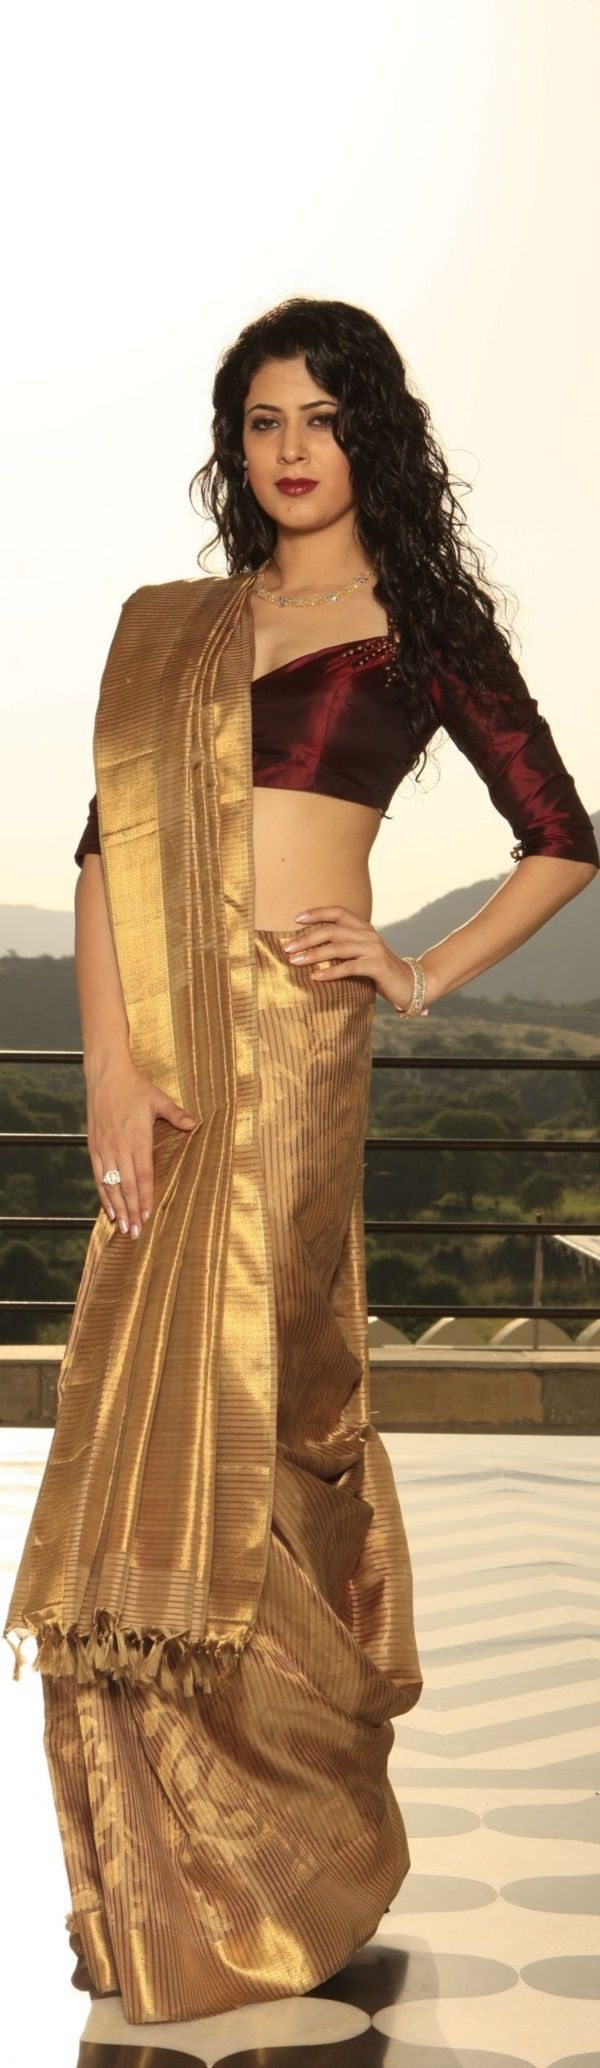 Refreshing and Traditional Saree Designs For You0371